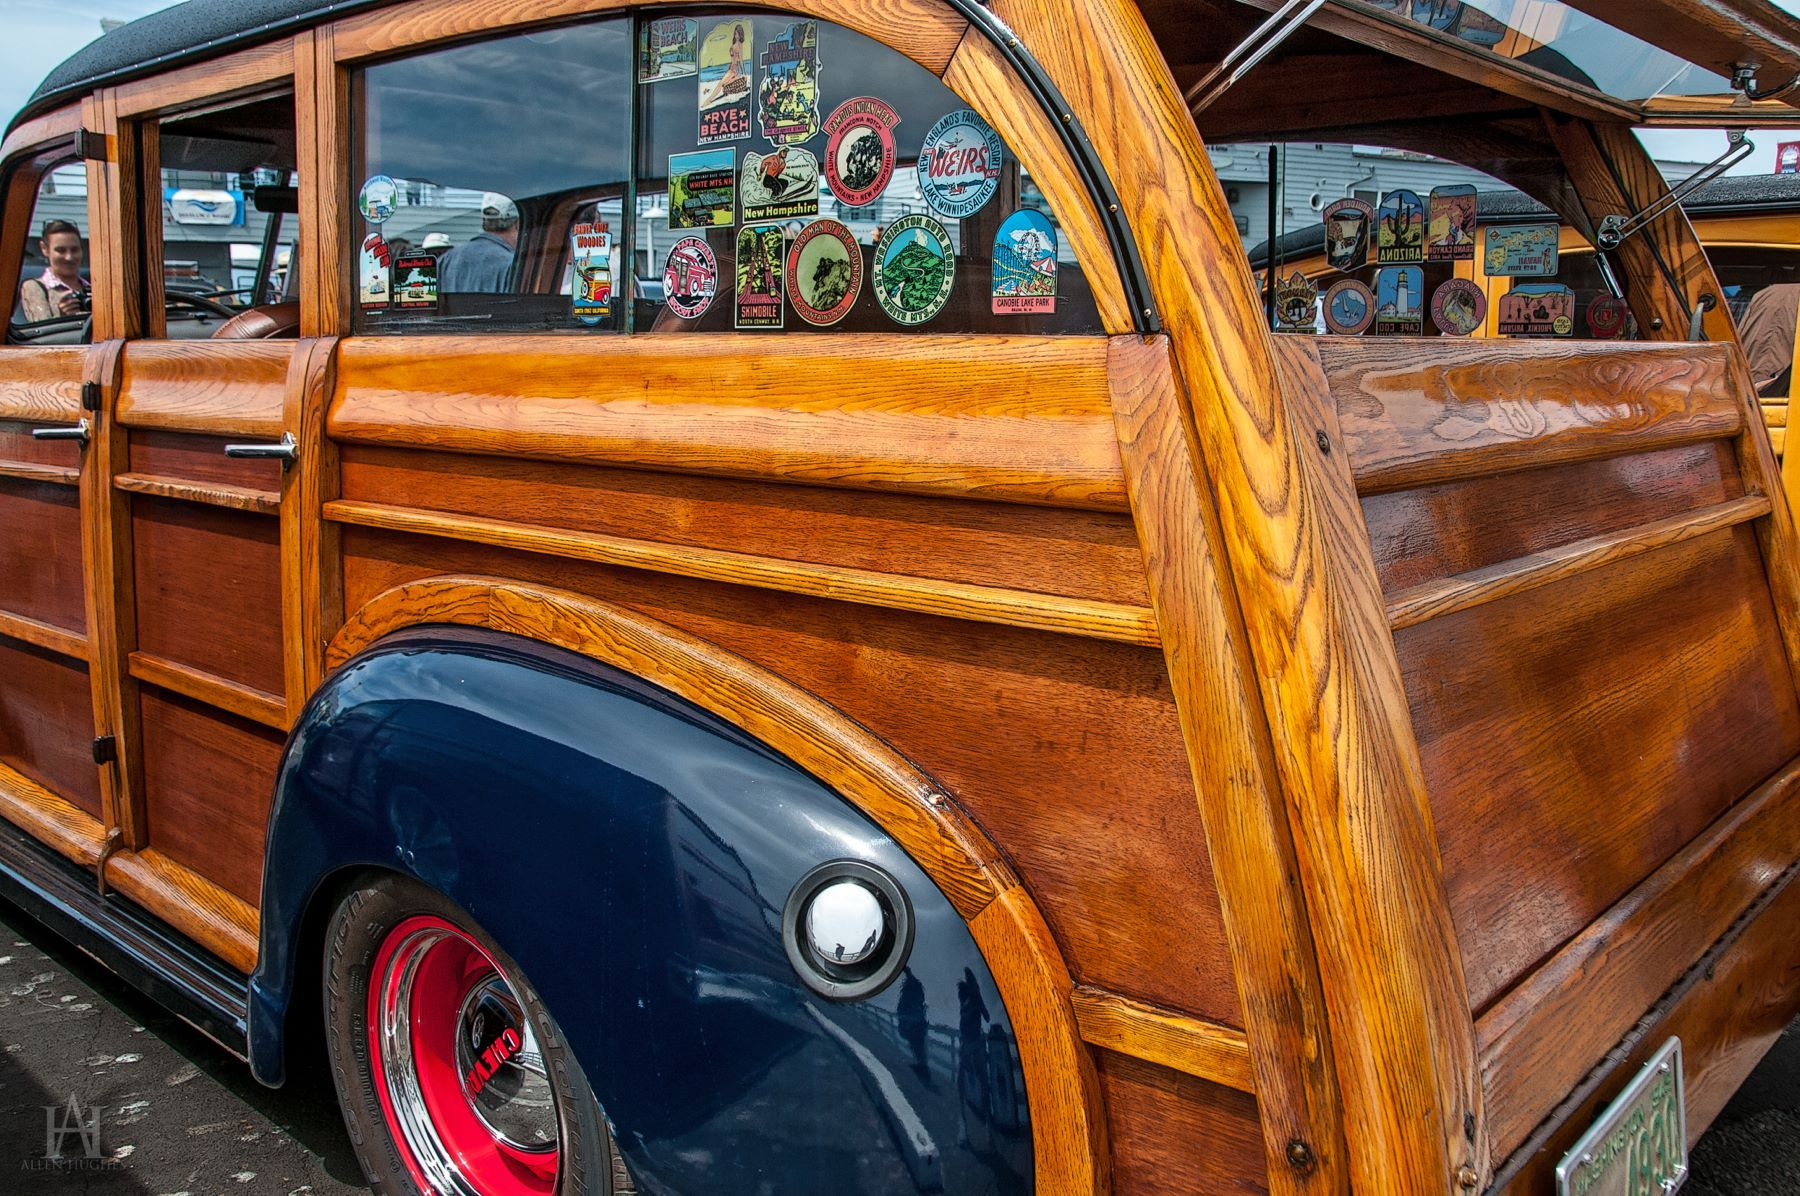 Pin by Richard Miller on Woodie Station Wagons and Cars | Pinterest ...